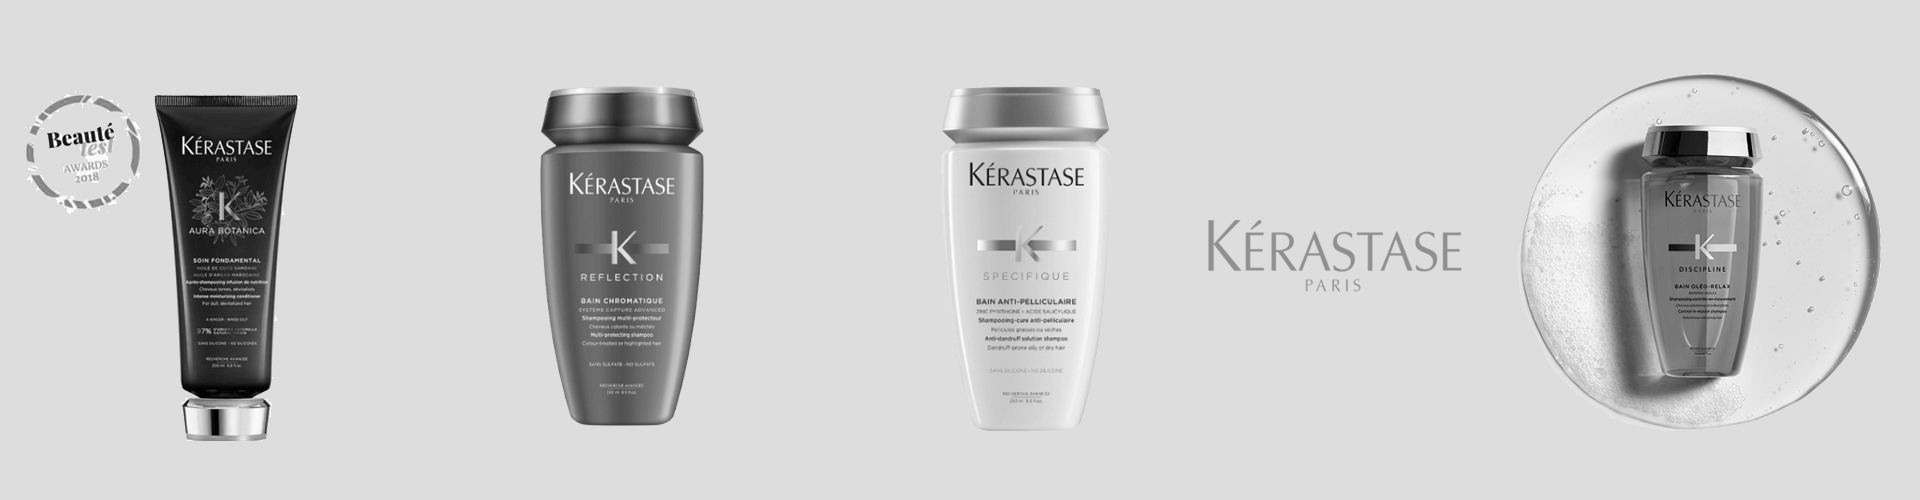 Kérastase at the best price